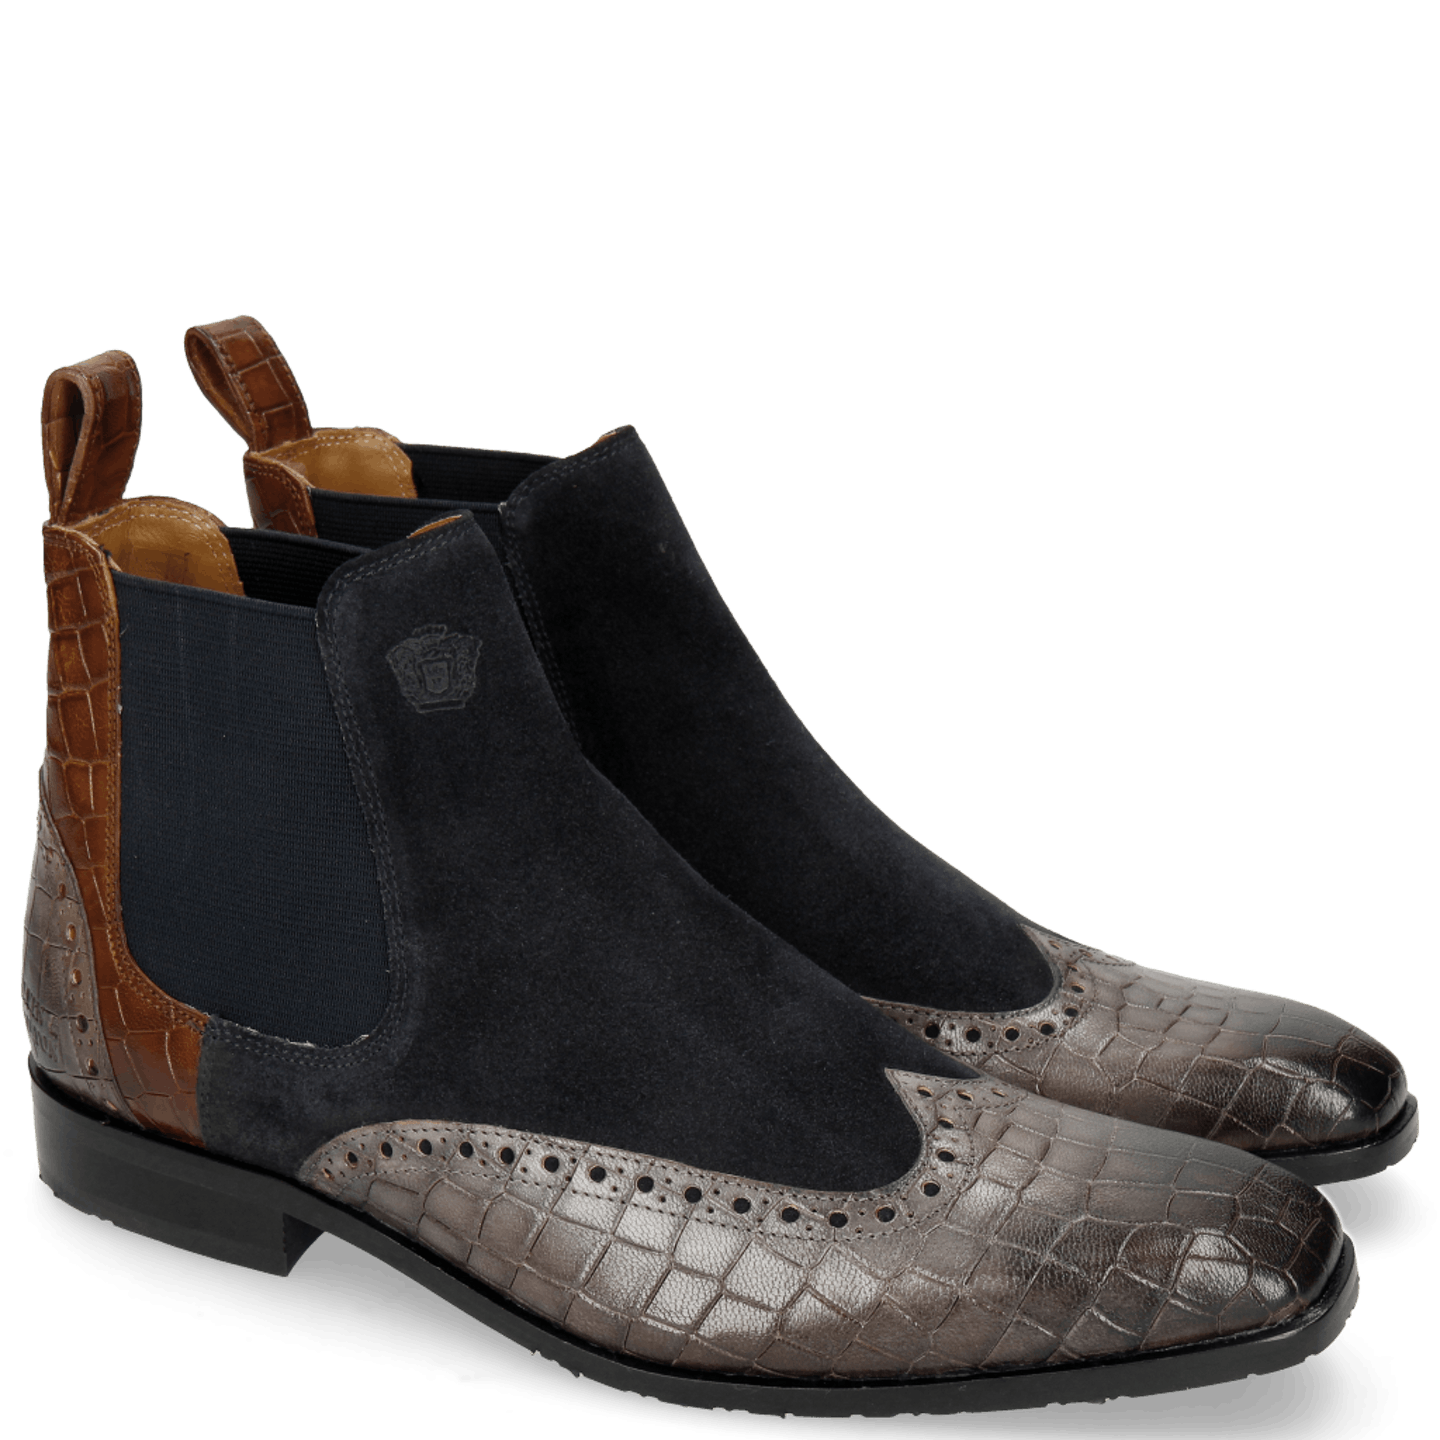 Rico 12 Venice Crock Stone Suede Pattini Perfo Navy Mid Brown